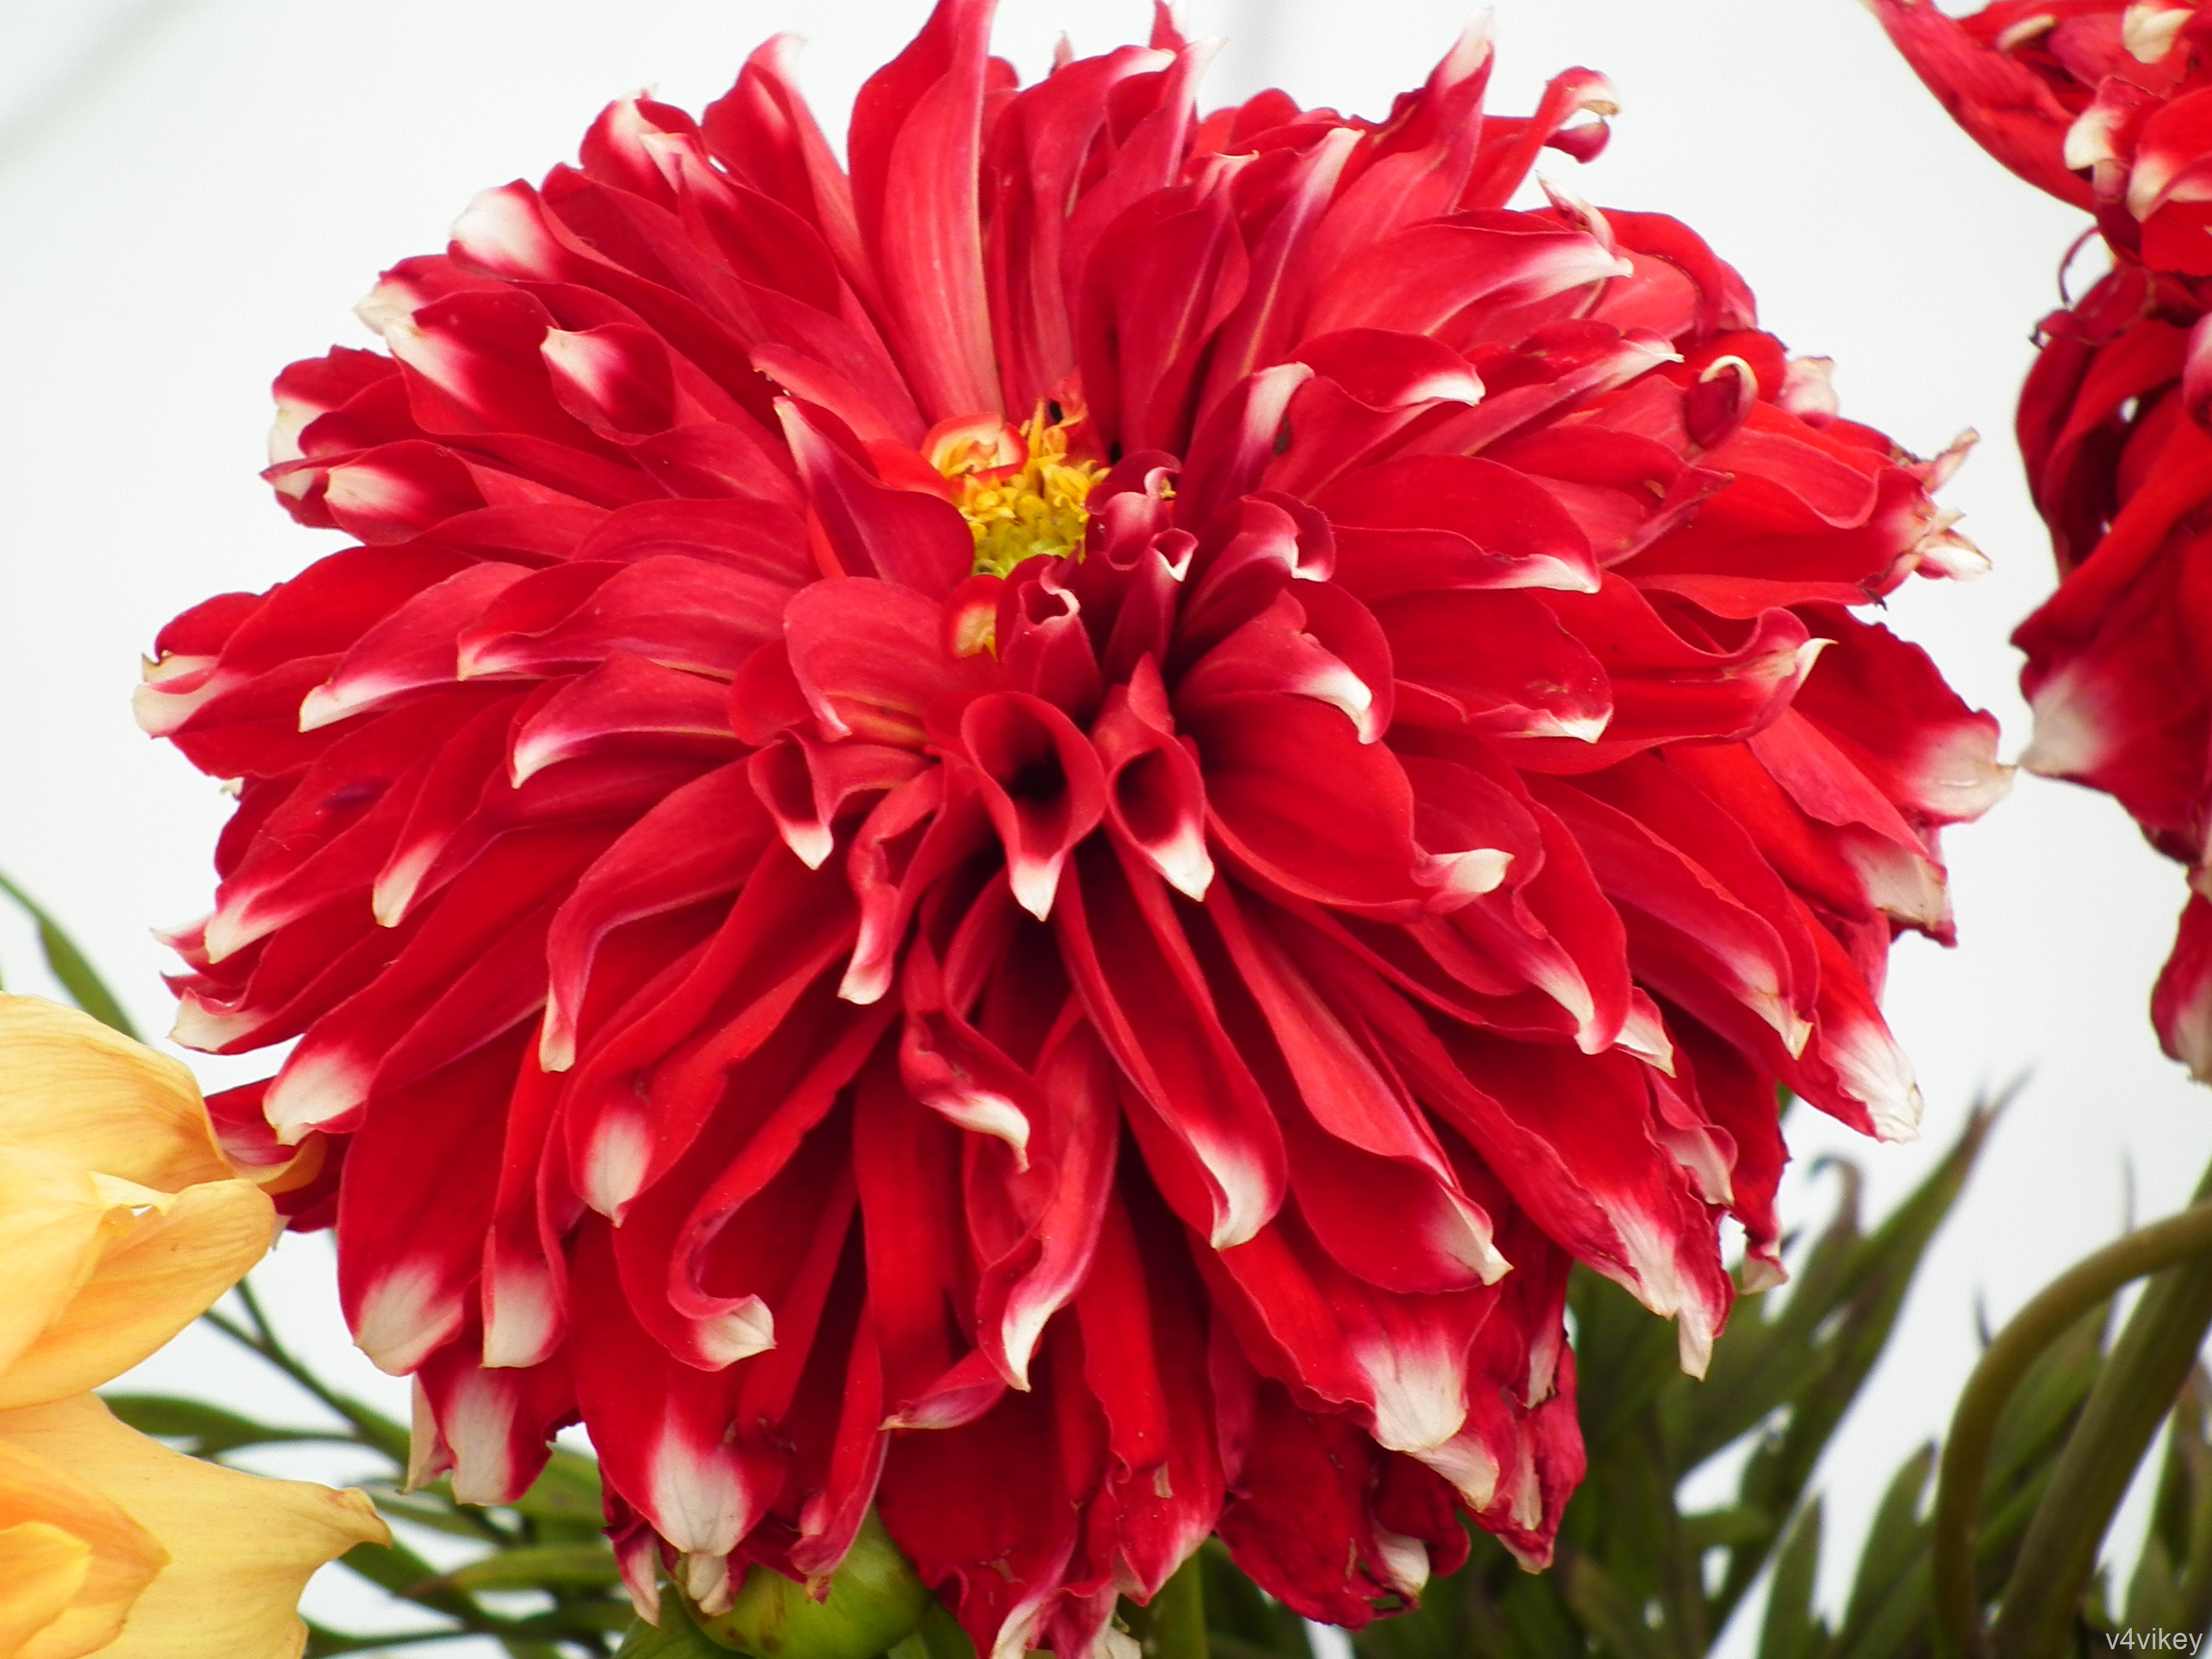 Red Checker Big Dahlia Flower is one of the most consistent blooming plant